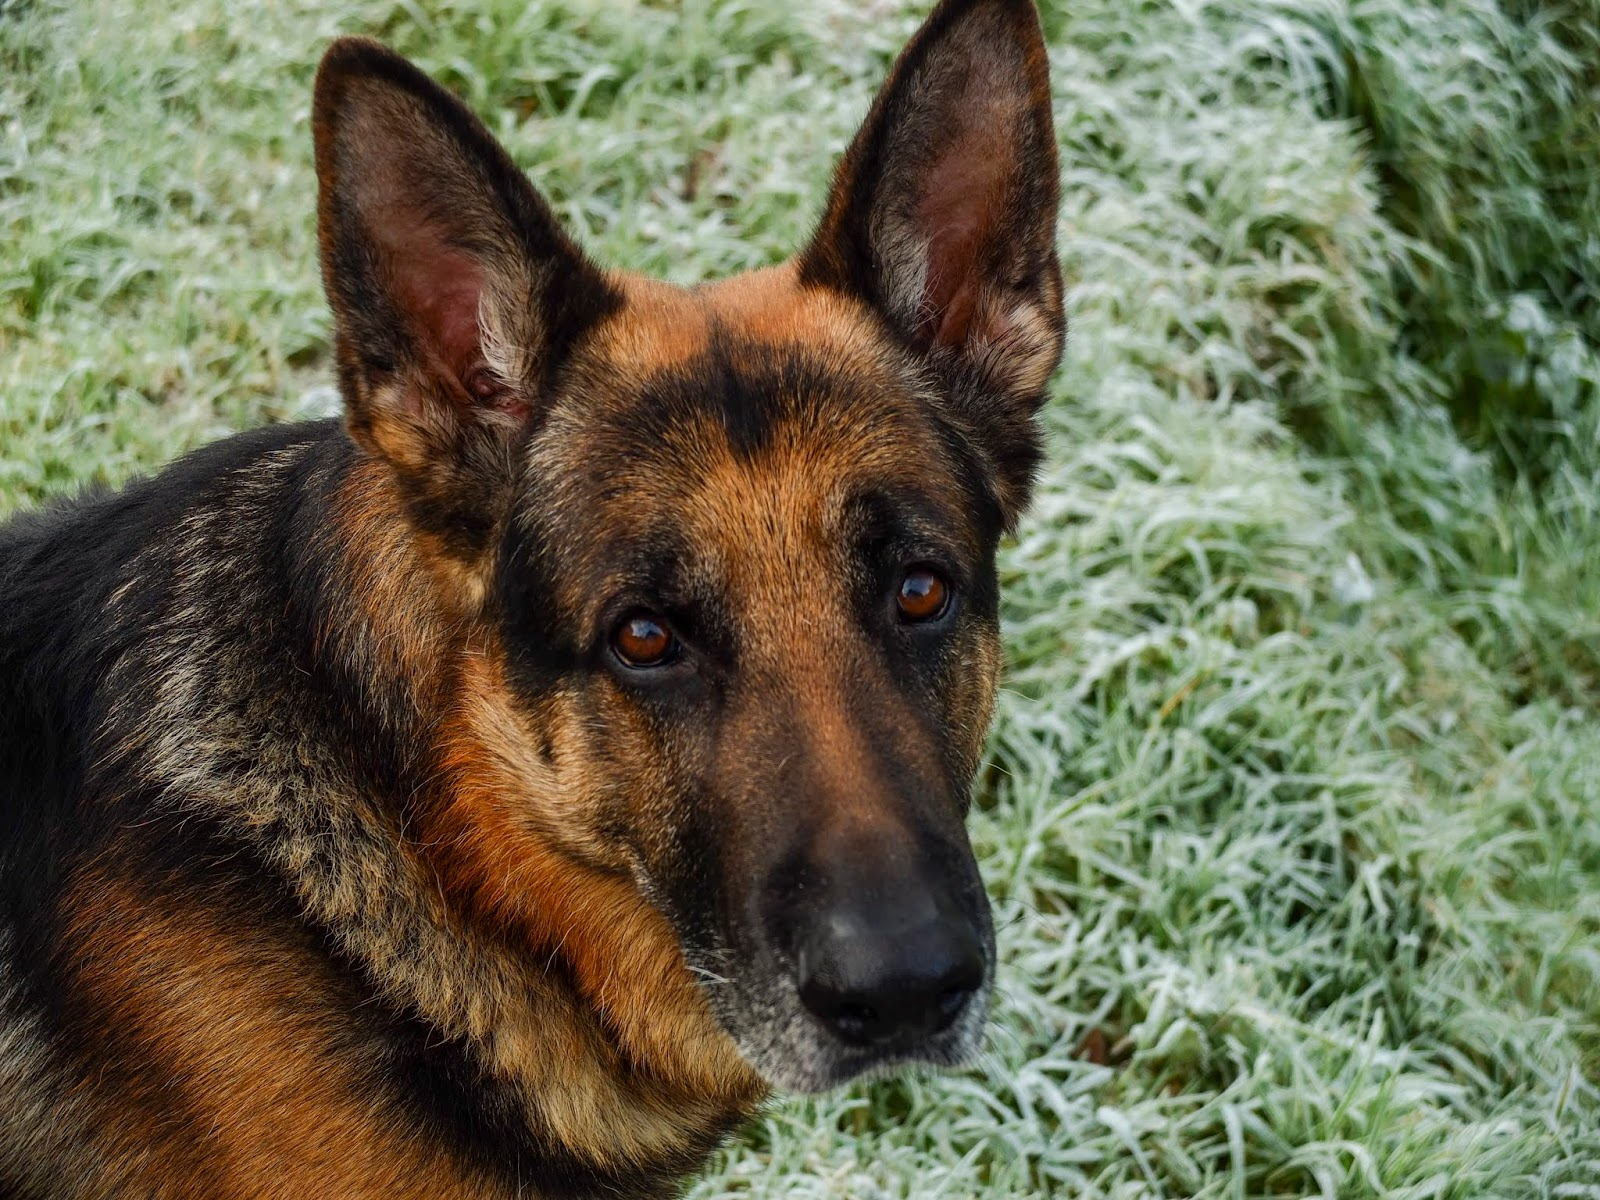 A portrait of a German Shepherd sitting on frosty grass looking up at the camera.